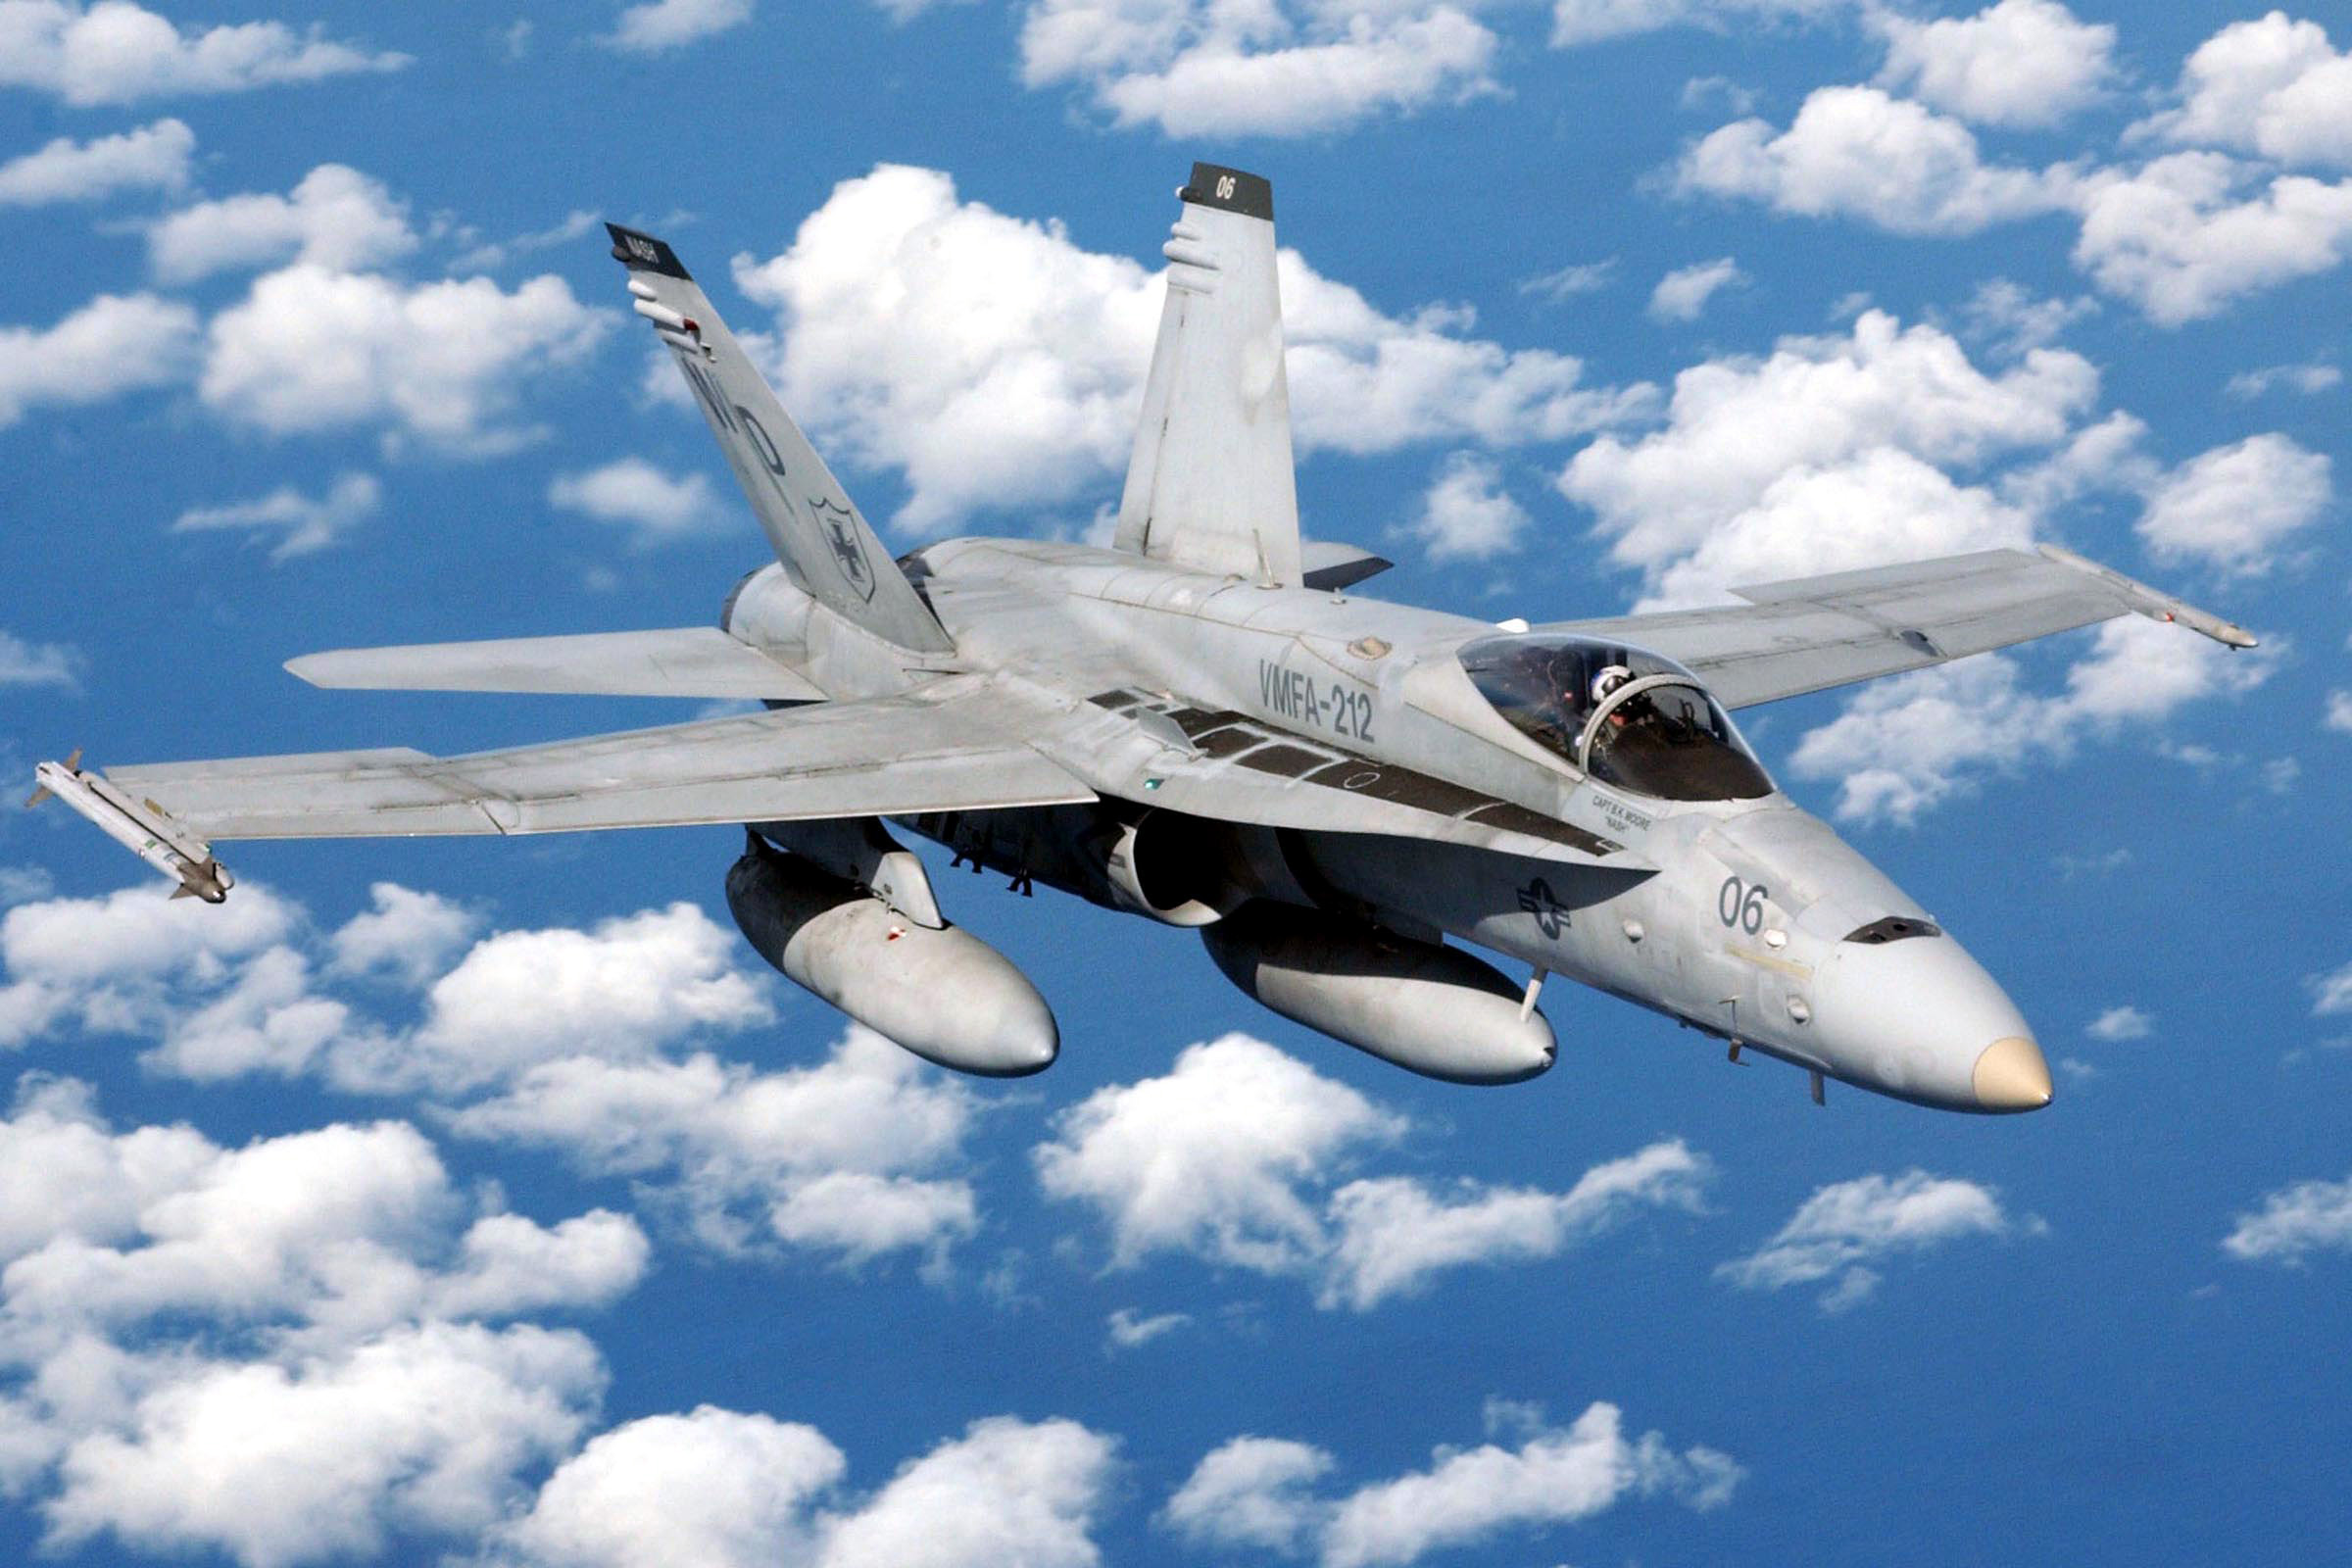 Depiction of McDonnell Douglas F/A-18 Hornet